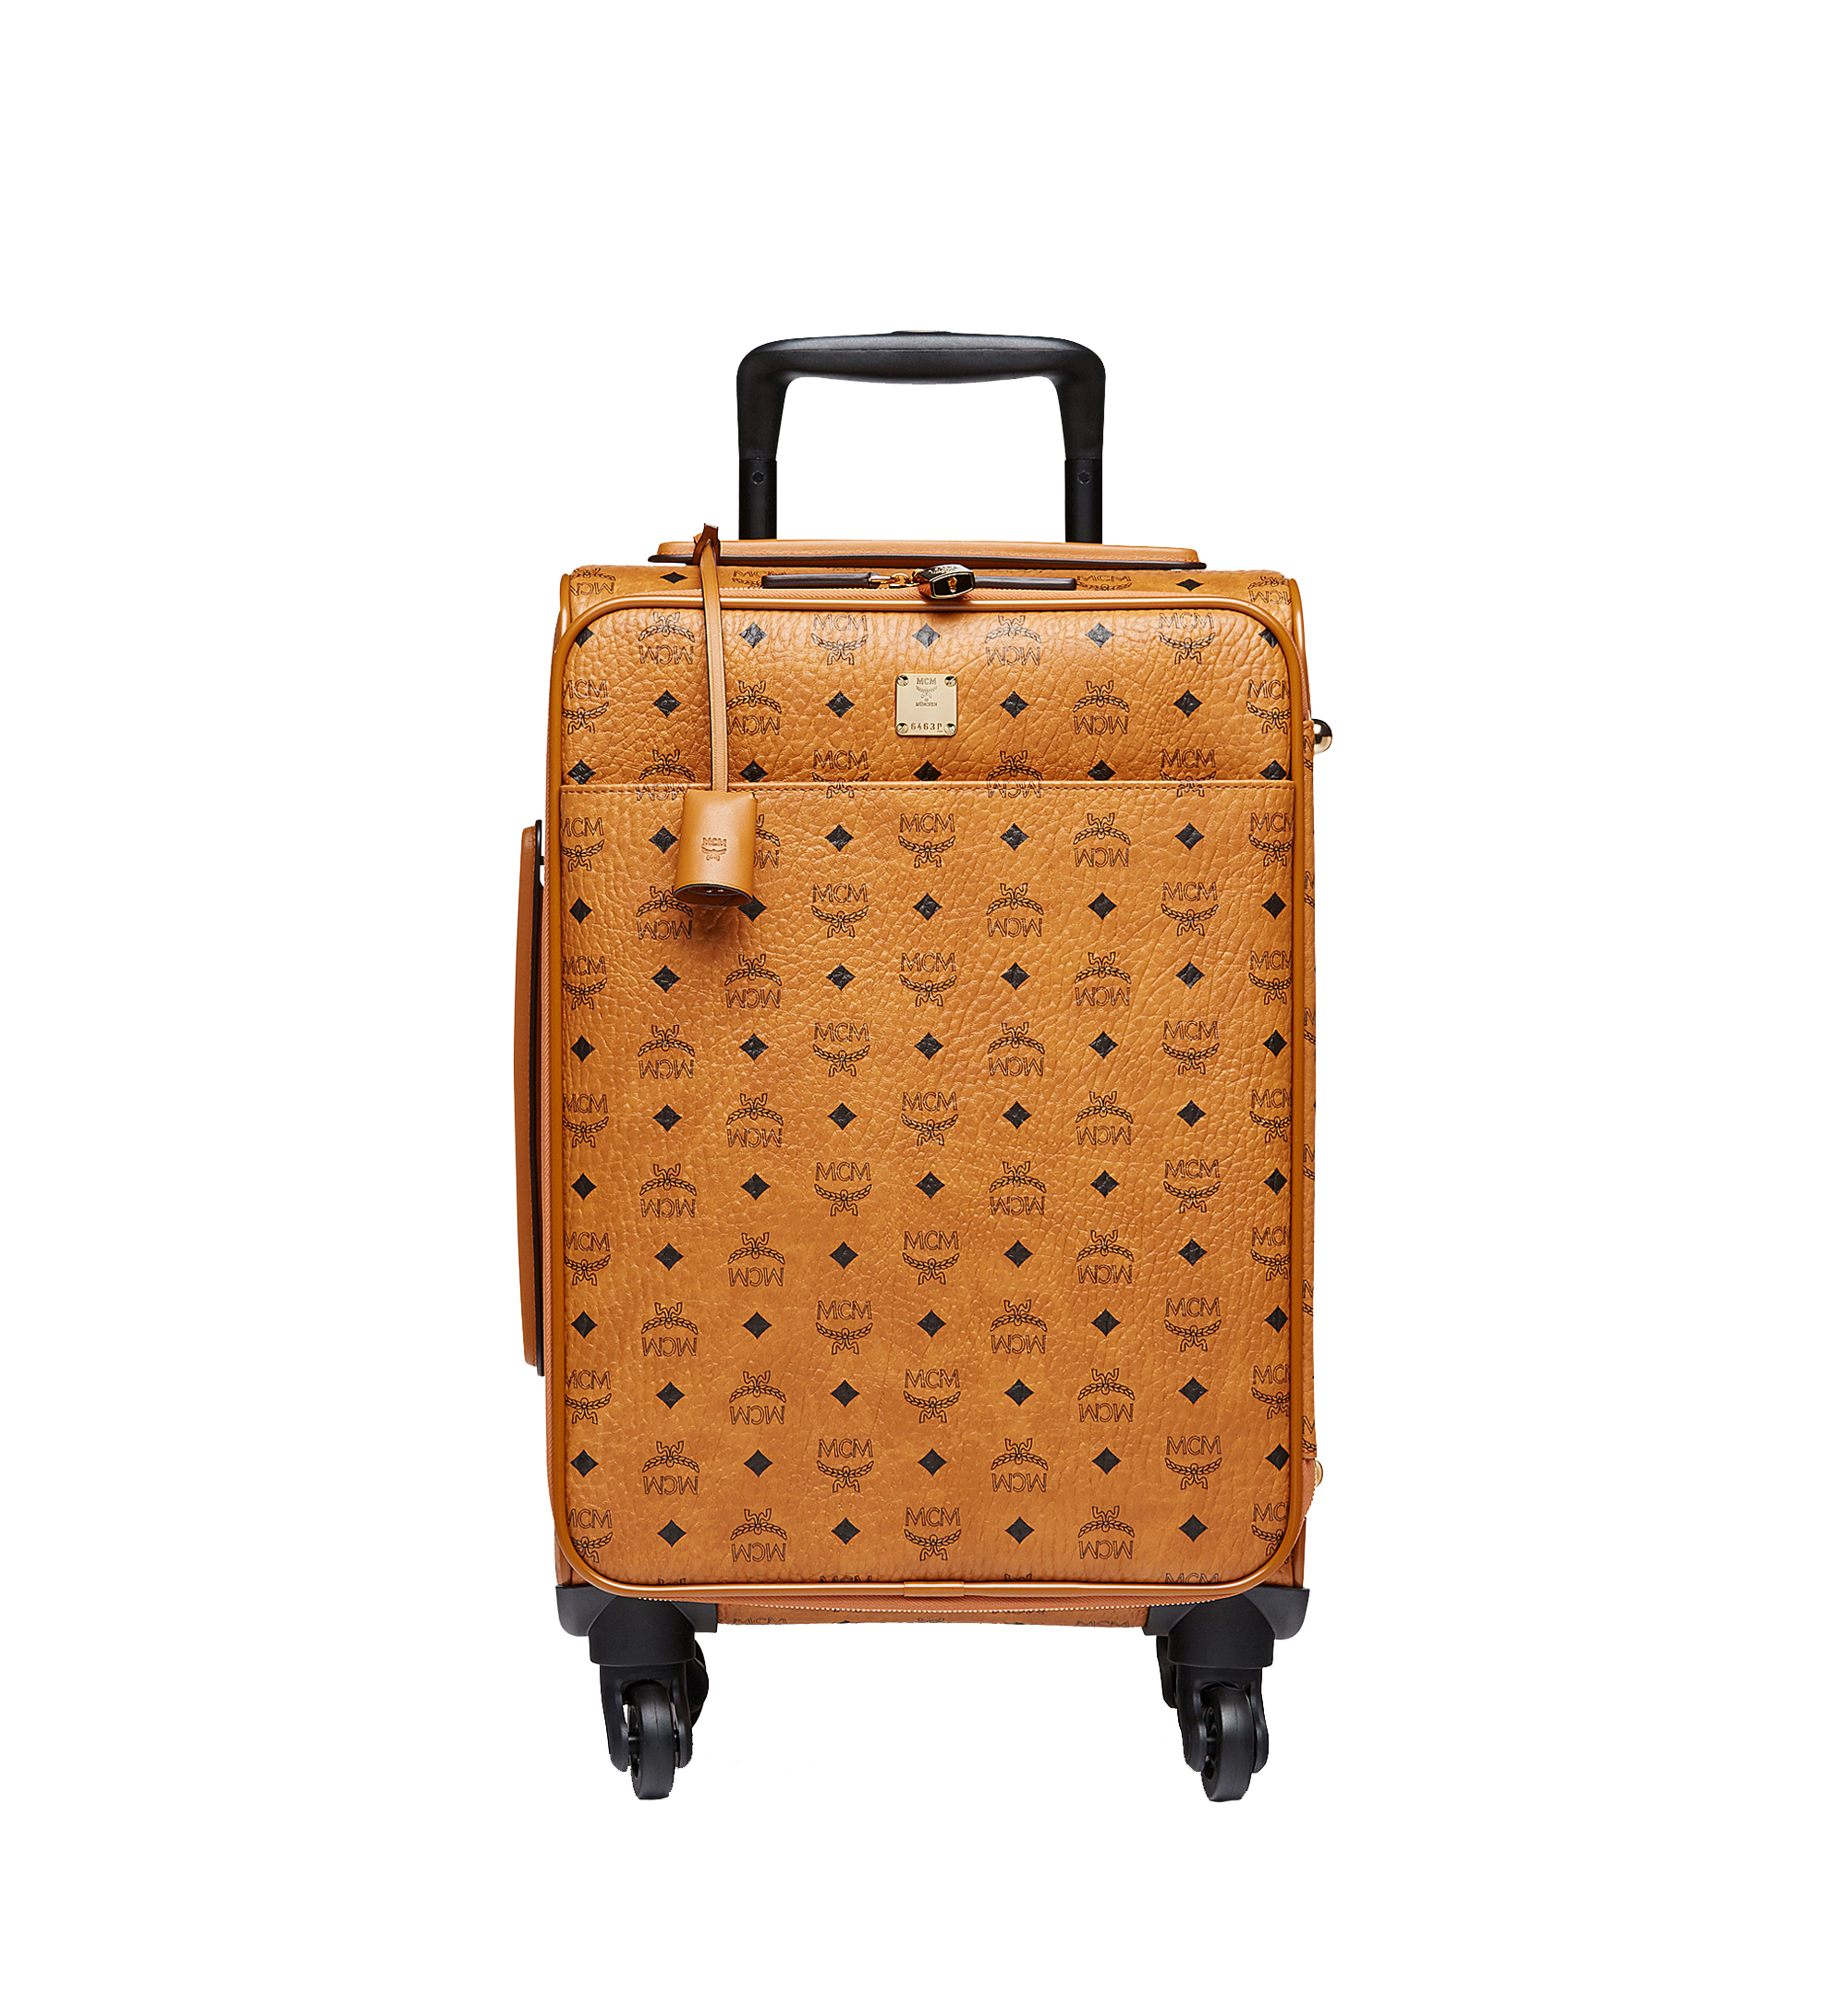 MCM Sac à roulettes pour cabine Traveler en Visetos Cognac MUV8SVY04CO001 Plus de photos 1